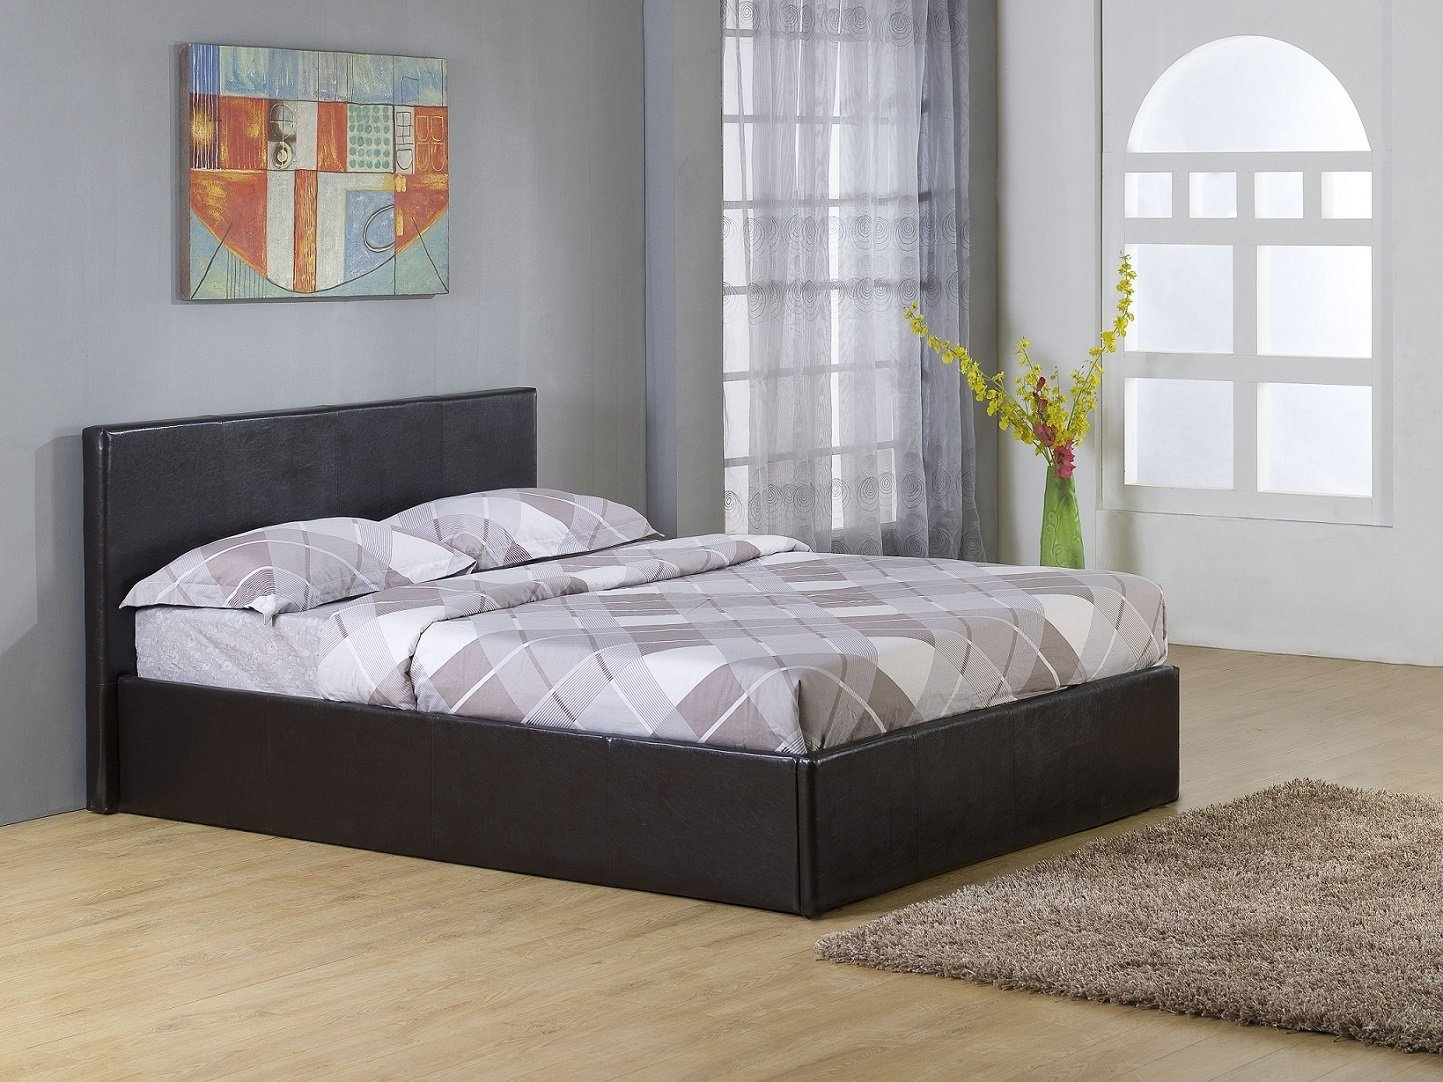 Image of: Storage Bed Plans Size